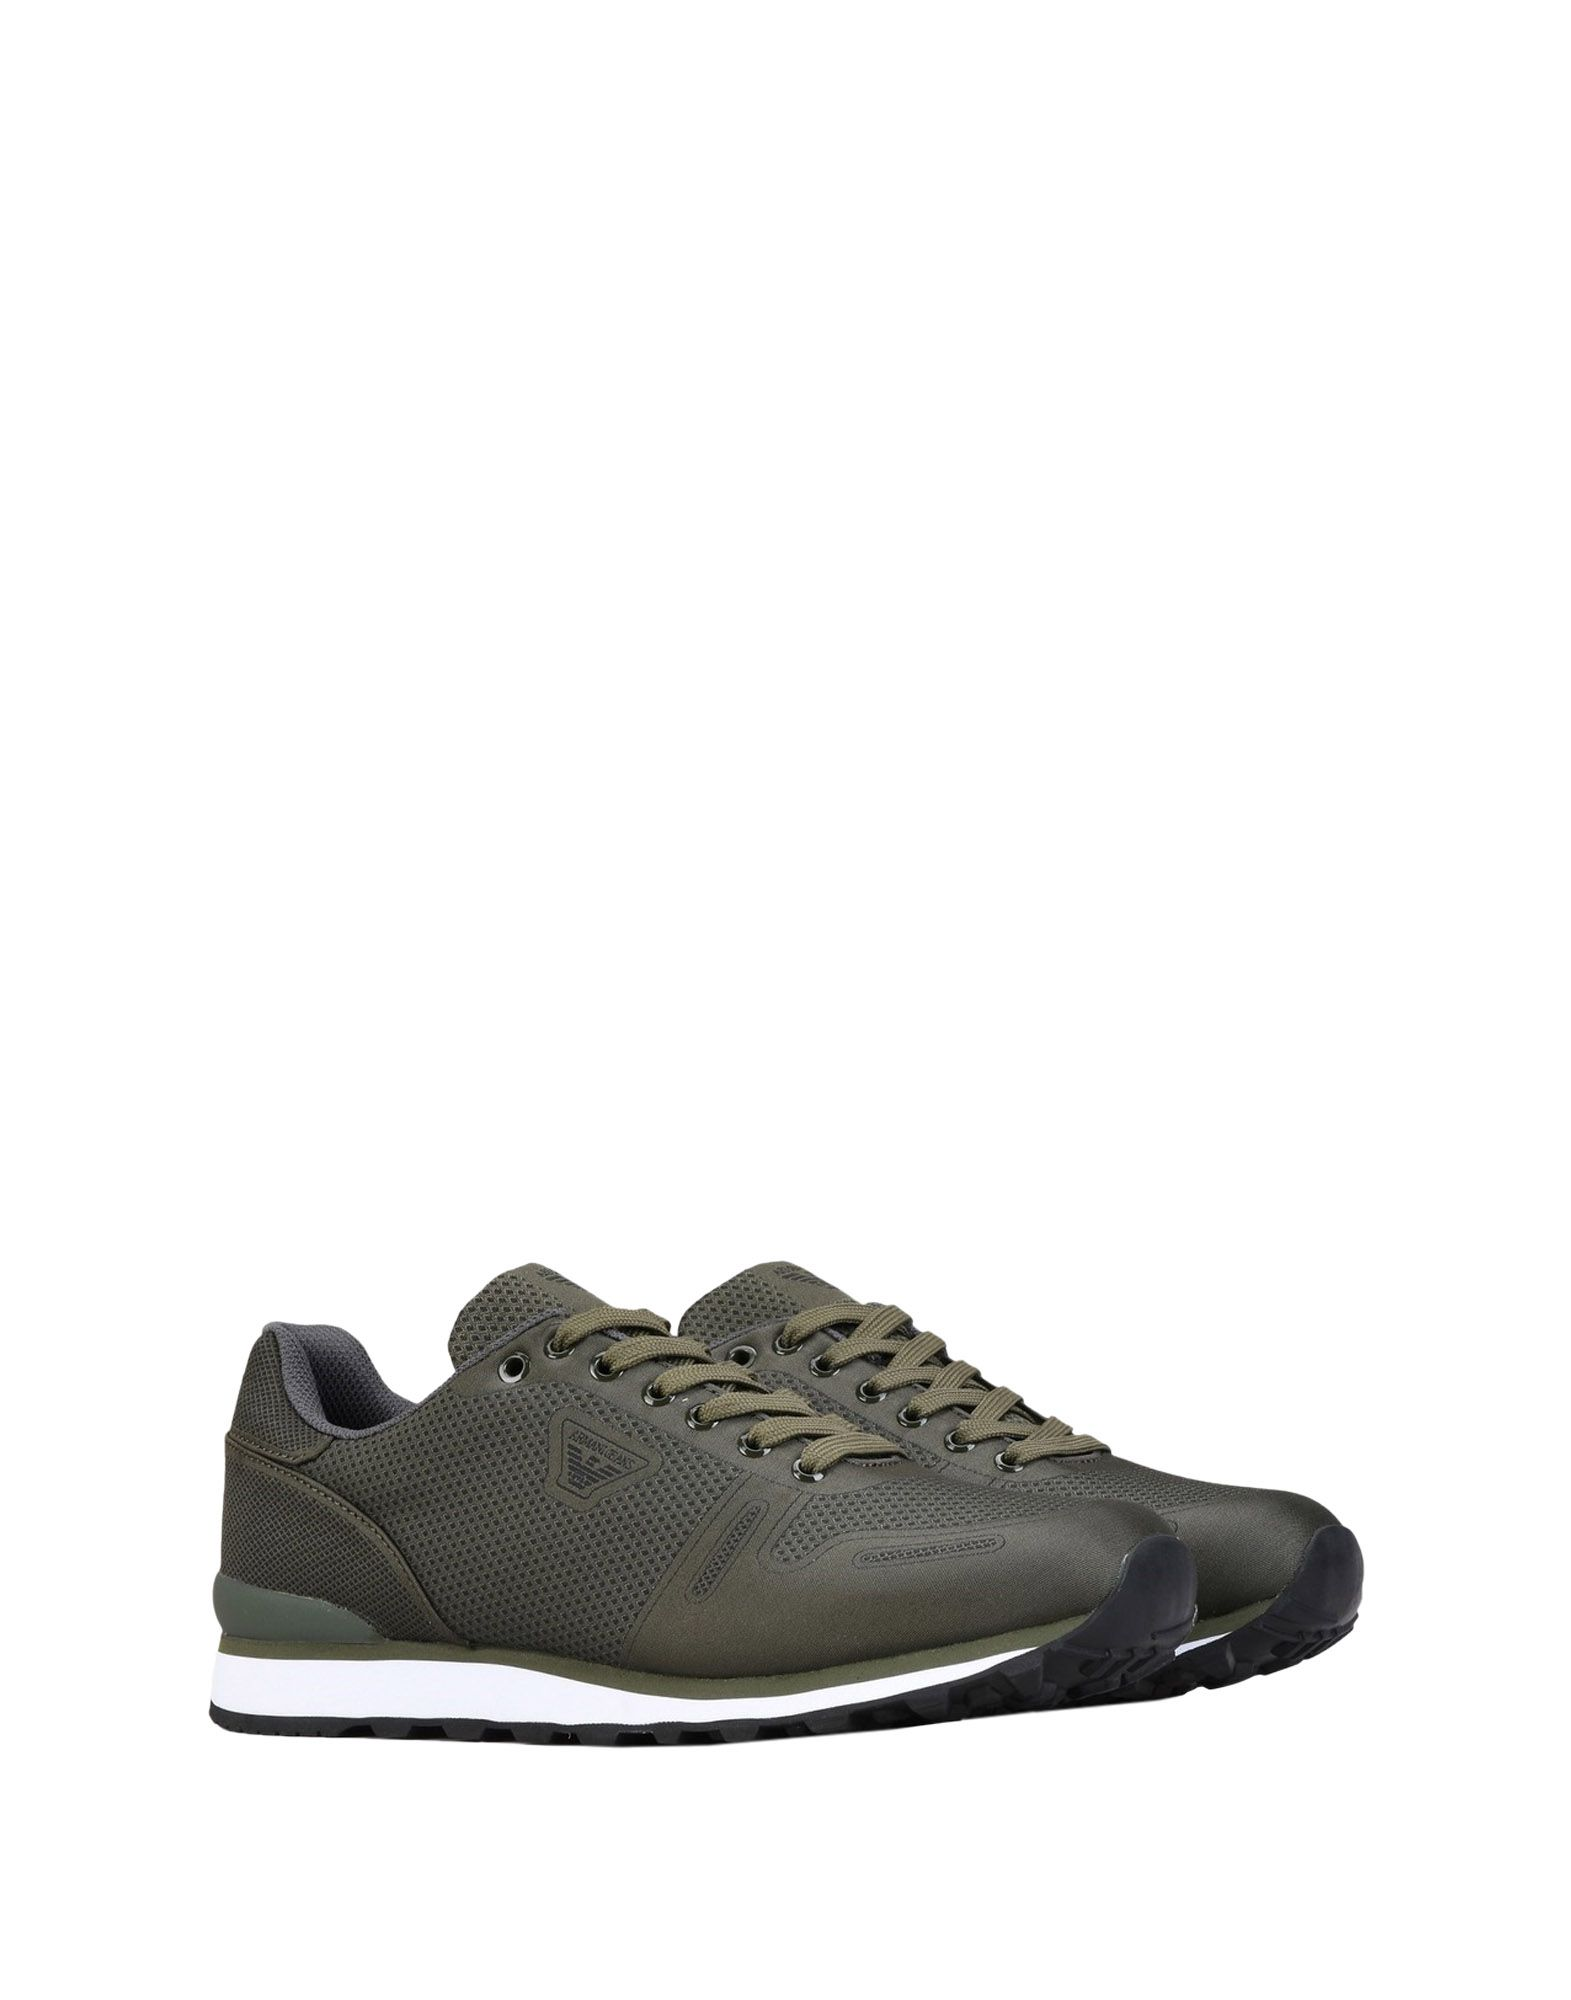 Armani on Jeans Sneakers - Men Armani Jeans Sneakers online on Armani  Canada - 11560122WO 76fa3f